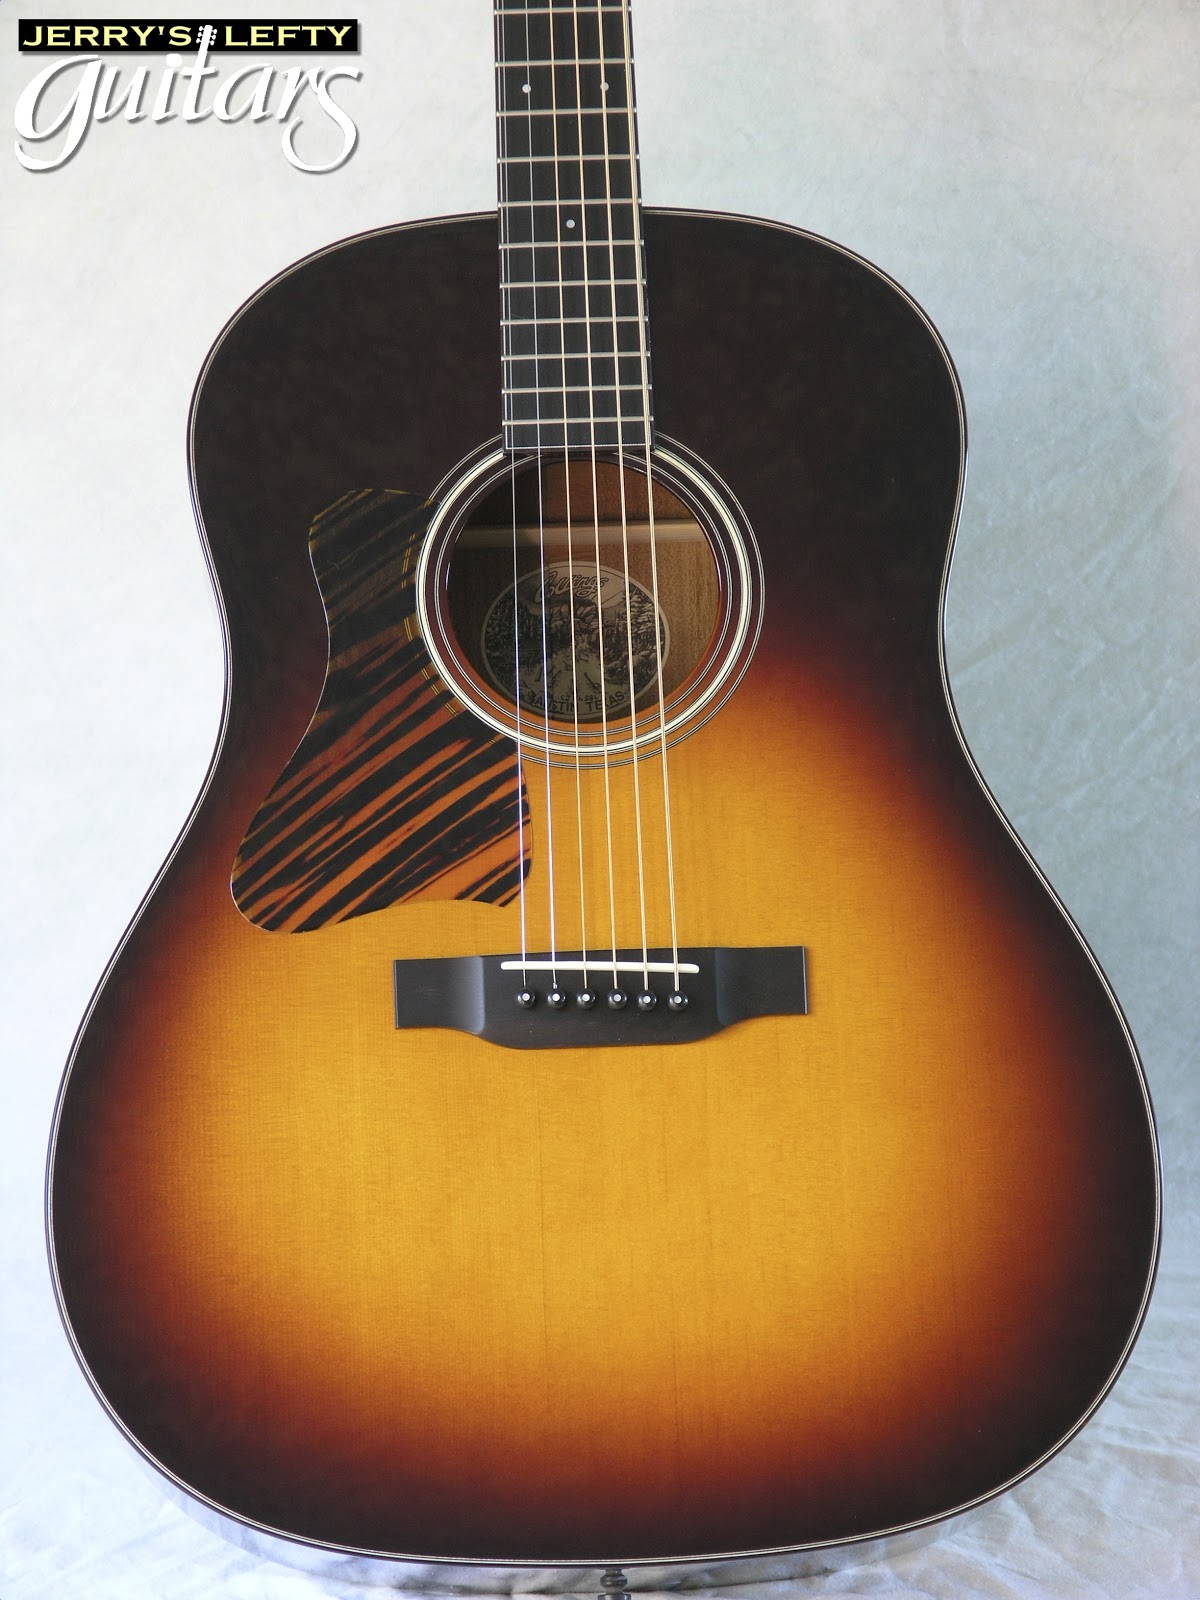 Jerry U0026 39 S Lefty Guitars Newest Guitar Arrivals  Updated Weekly   Collings Cj Custom Left Handed